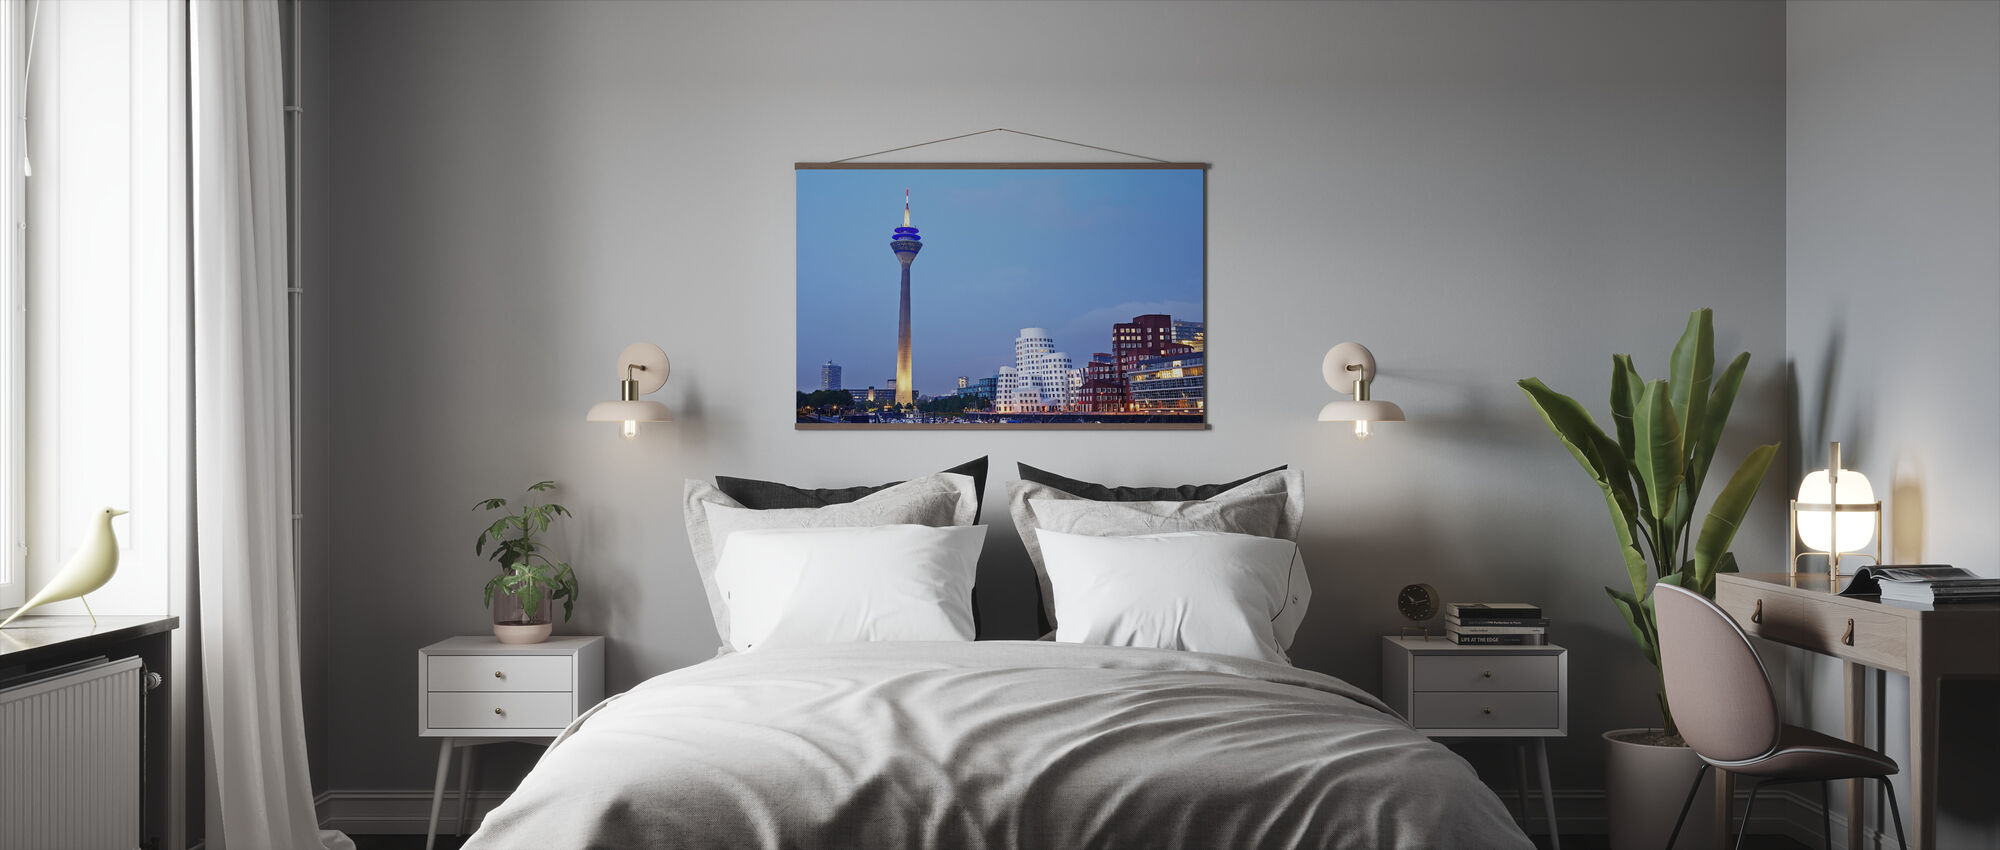 Düsseldorf's Rheinturm Tower at Dusk - Poster - Bedroom